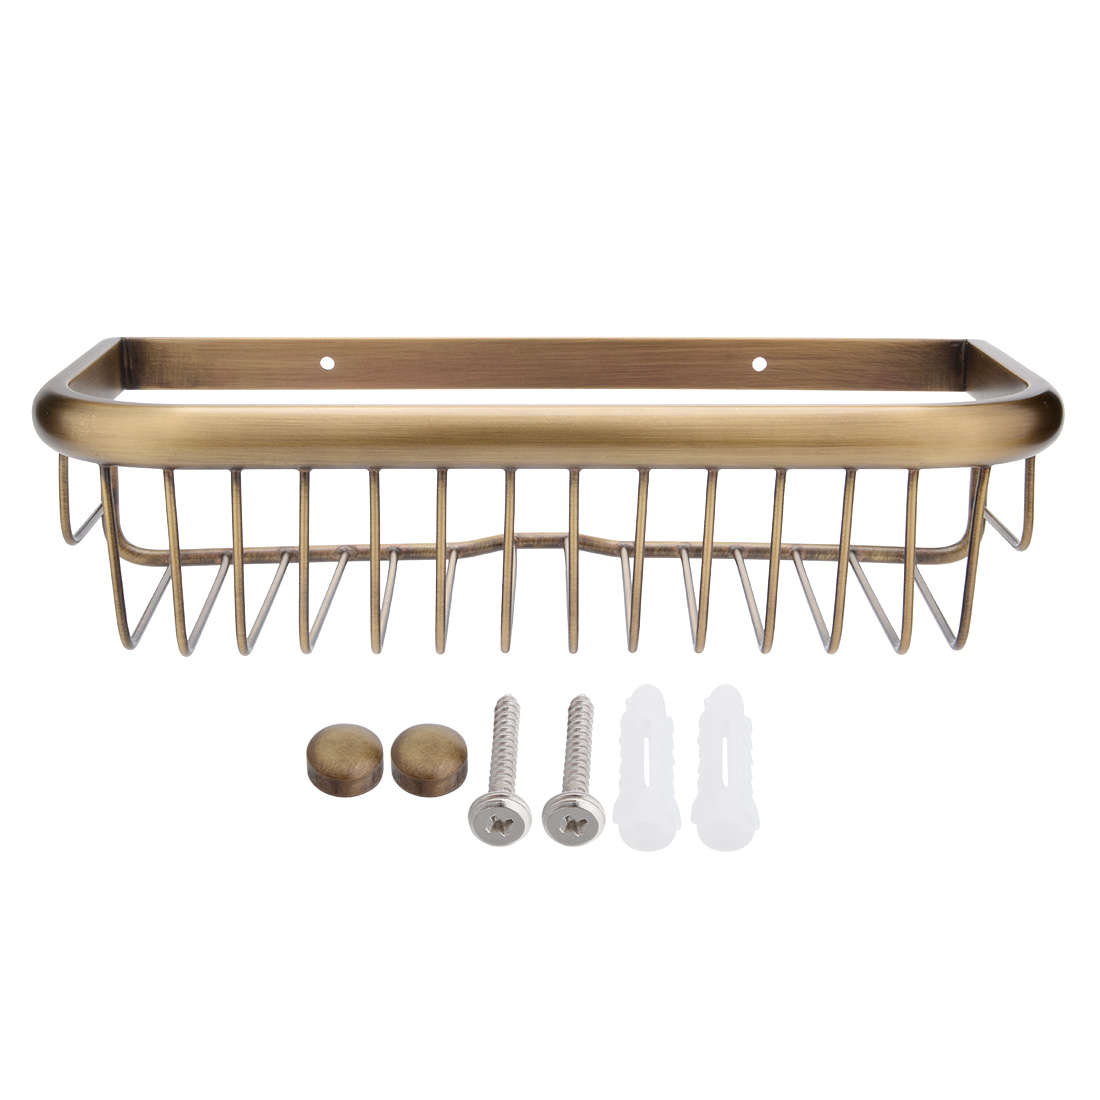 12-inch Length Brass Rectangle Shape Bathroom Shower Caddy Basket Bronze Tone by